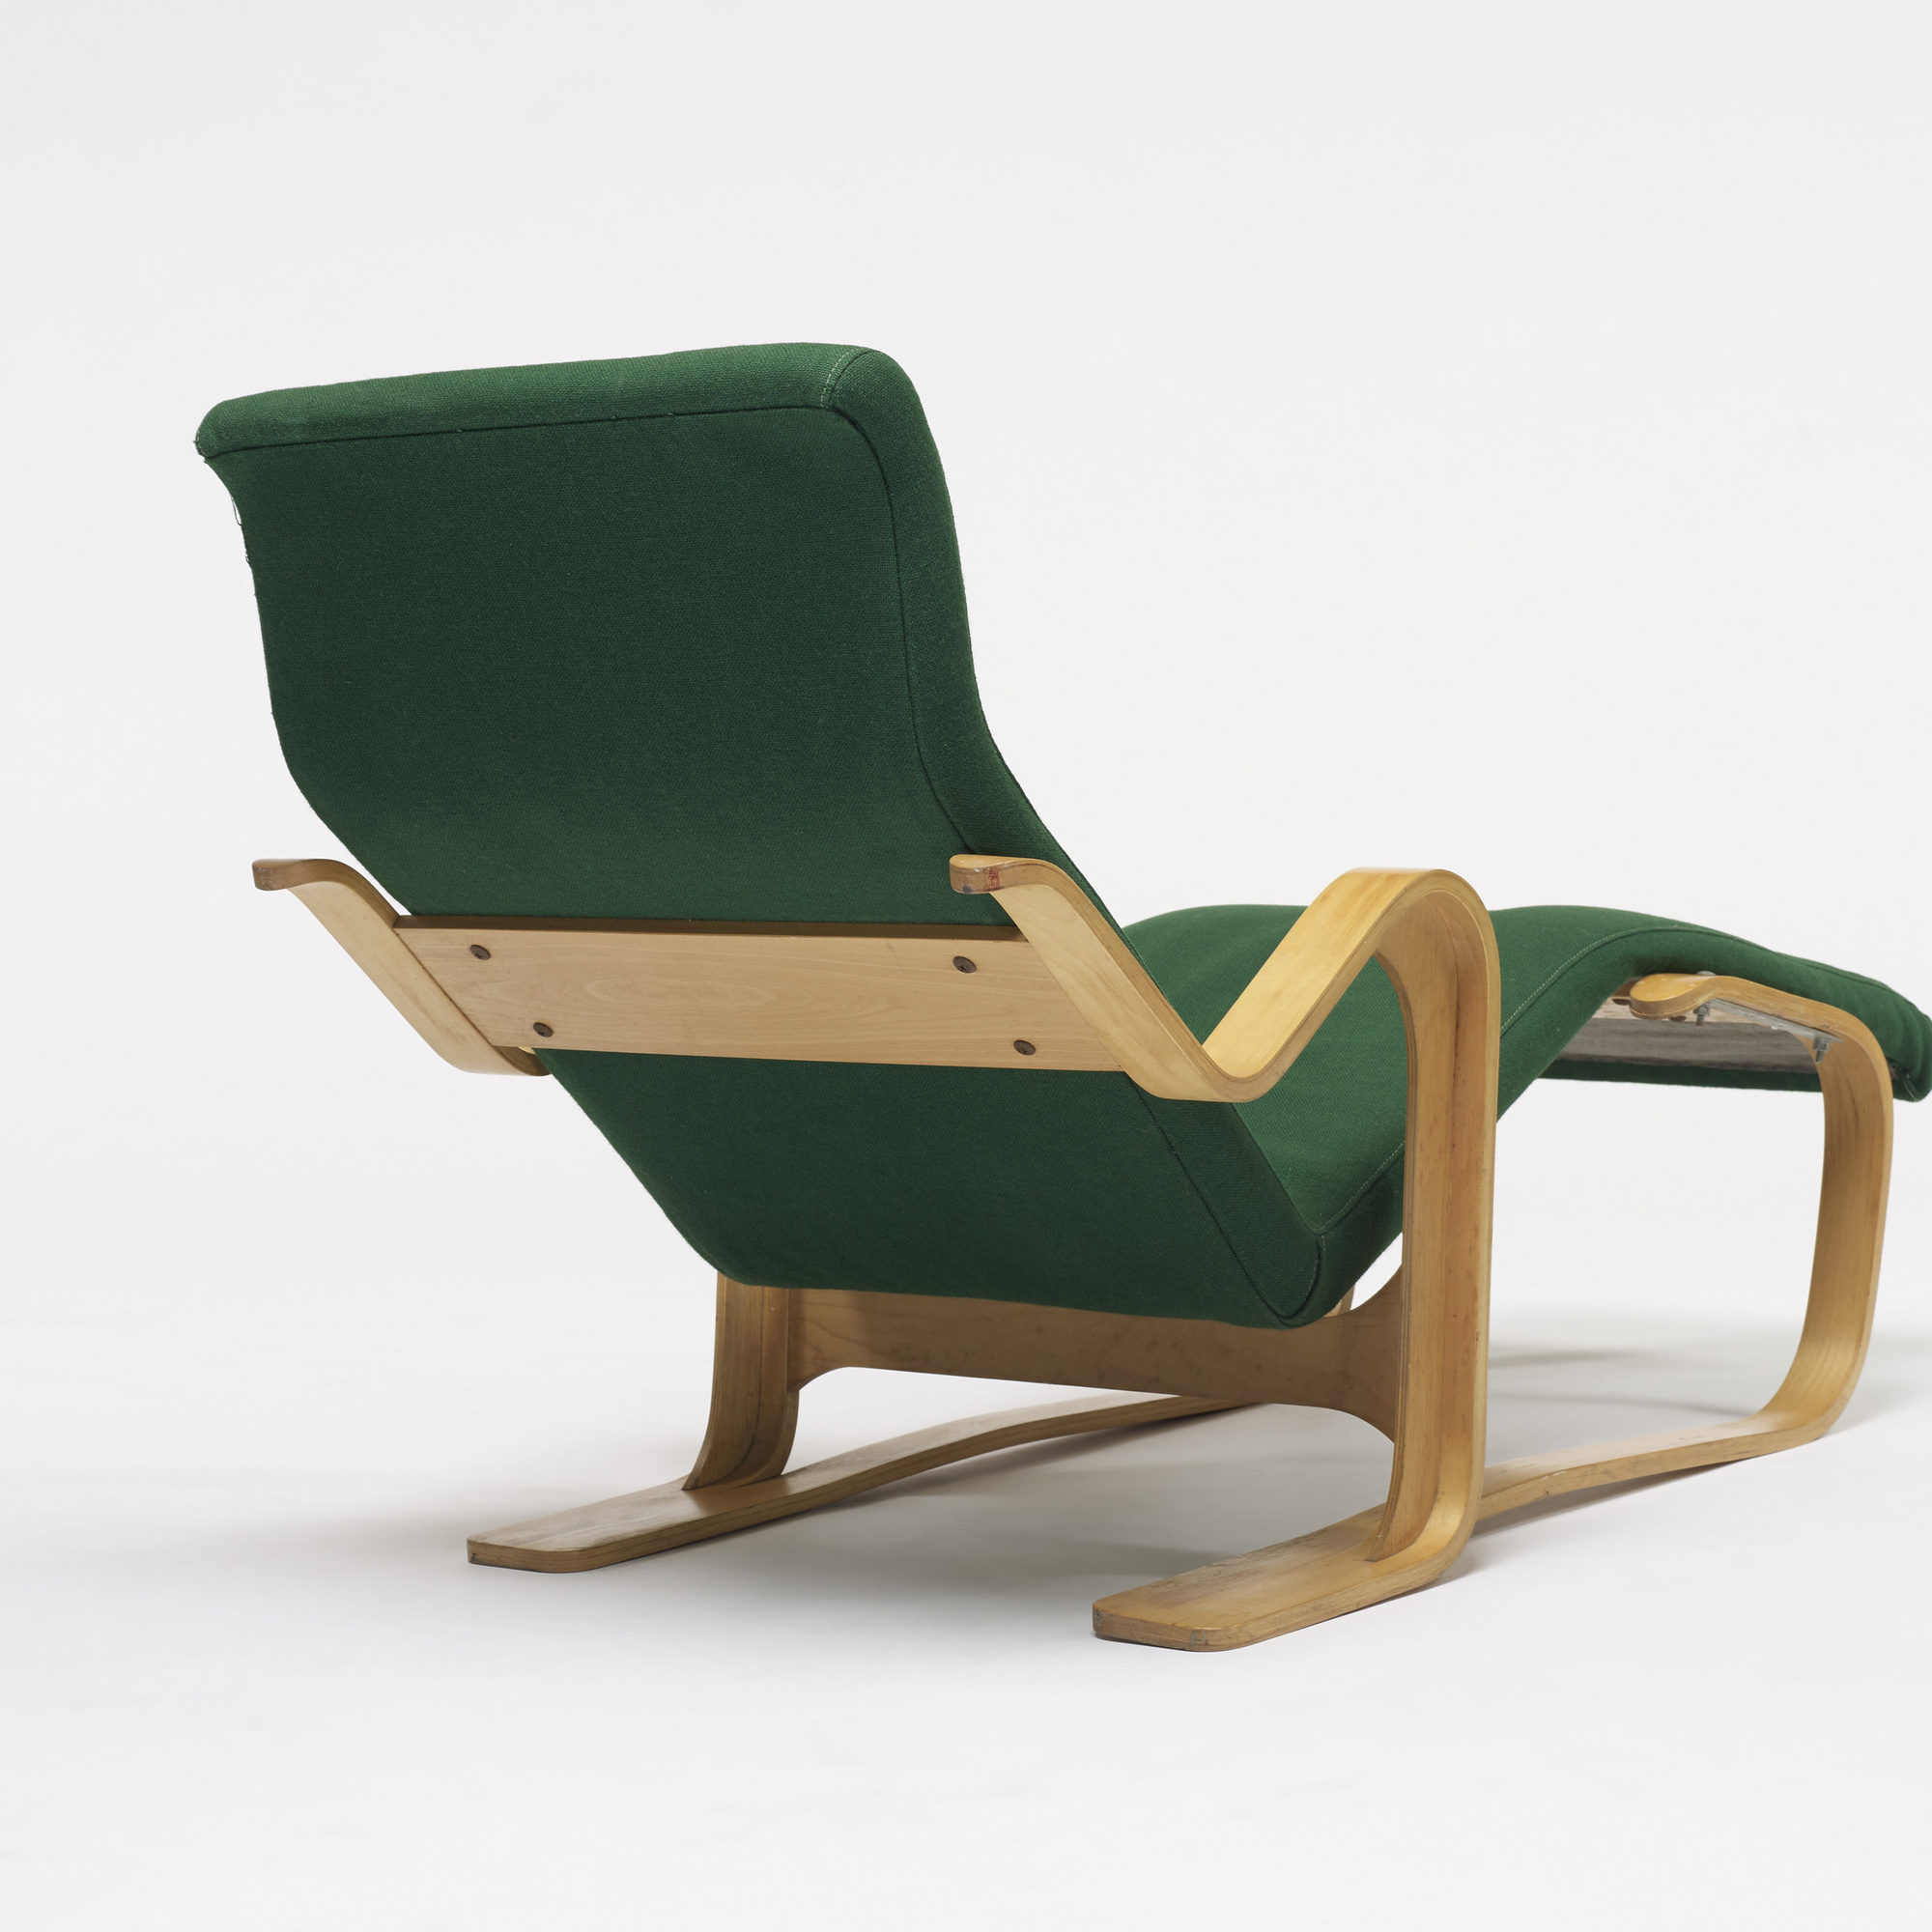 184: Marcel Breuer / Long chaise (2 of 2)